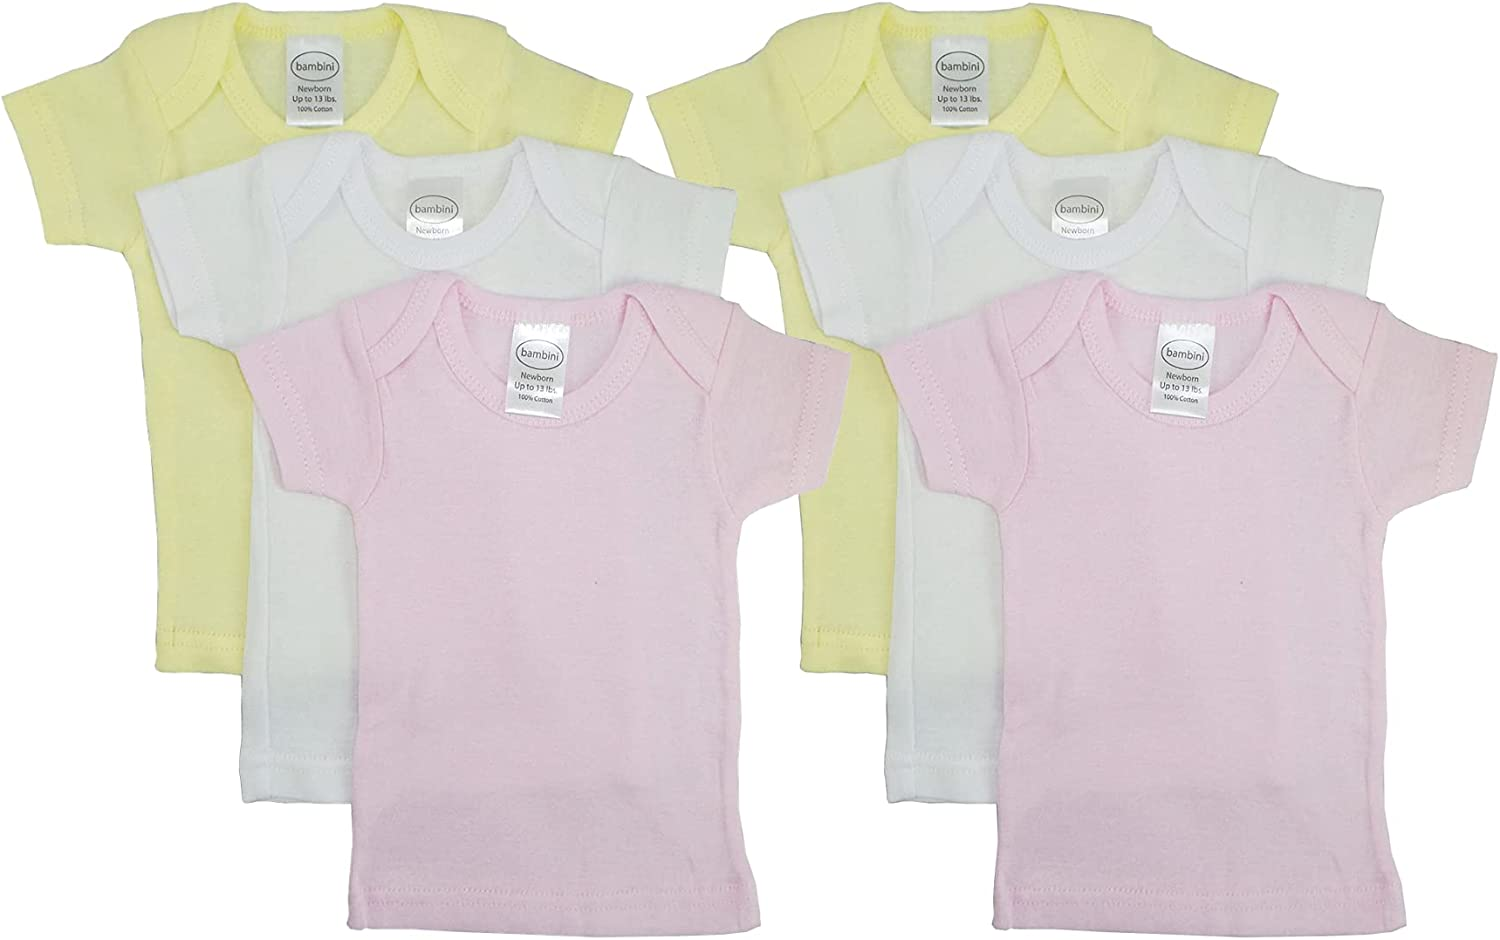 Unisex Baby Short & Long Sleeve Tee Shirts, 100% Cotton for Variety Packs of 3-Pack/ 6-Pack (Newborn (0-6 Months/up to 13 lbs.), Short-Sleeve_6-Pack_Pastel_for Girl)